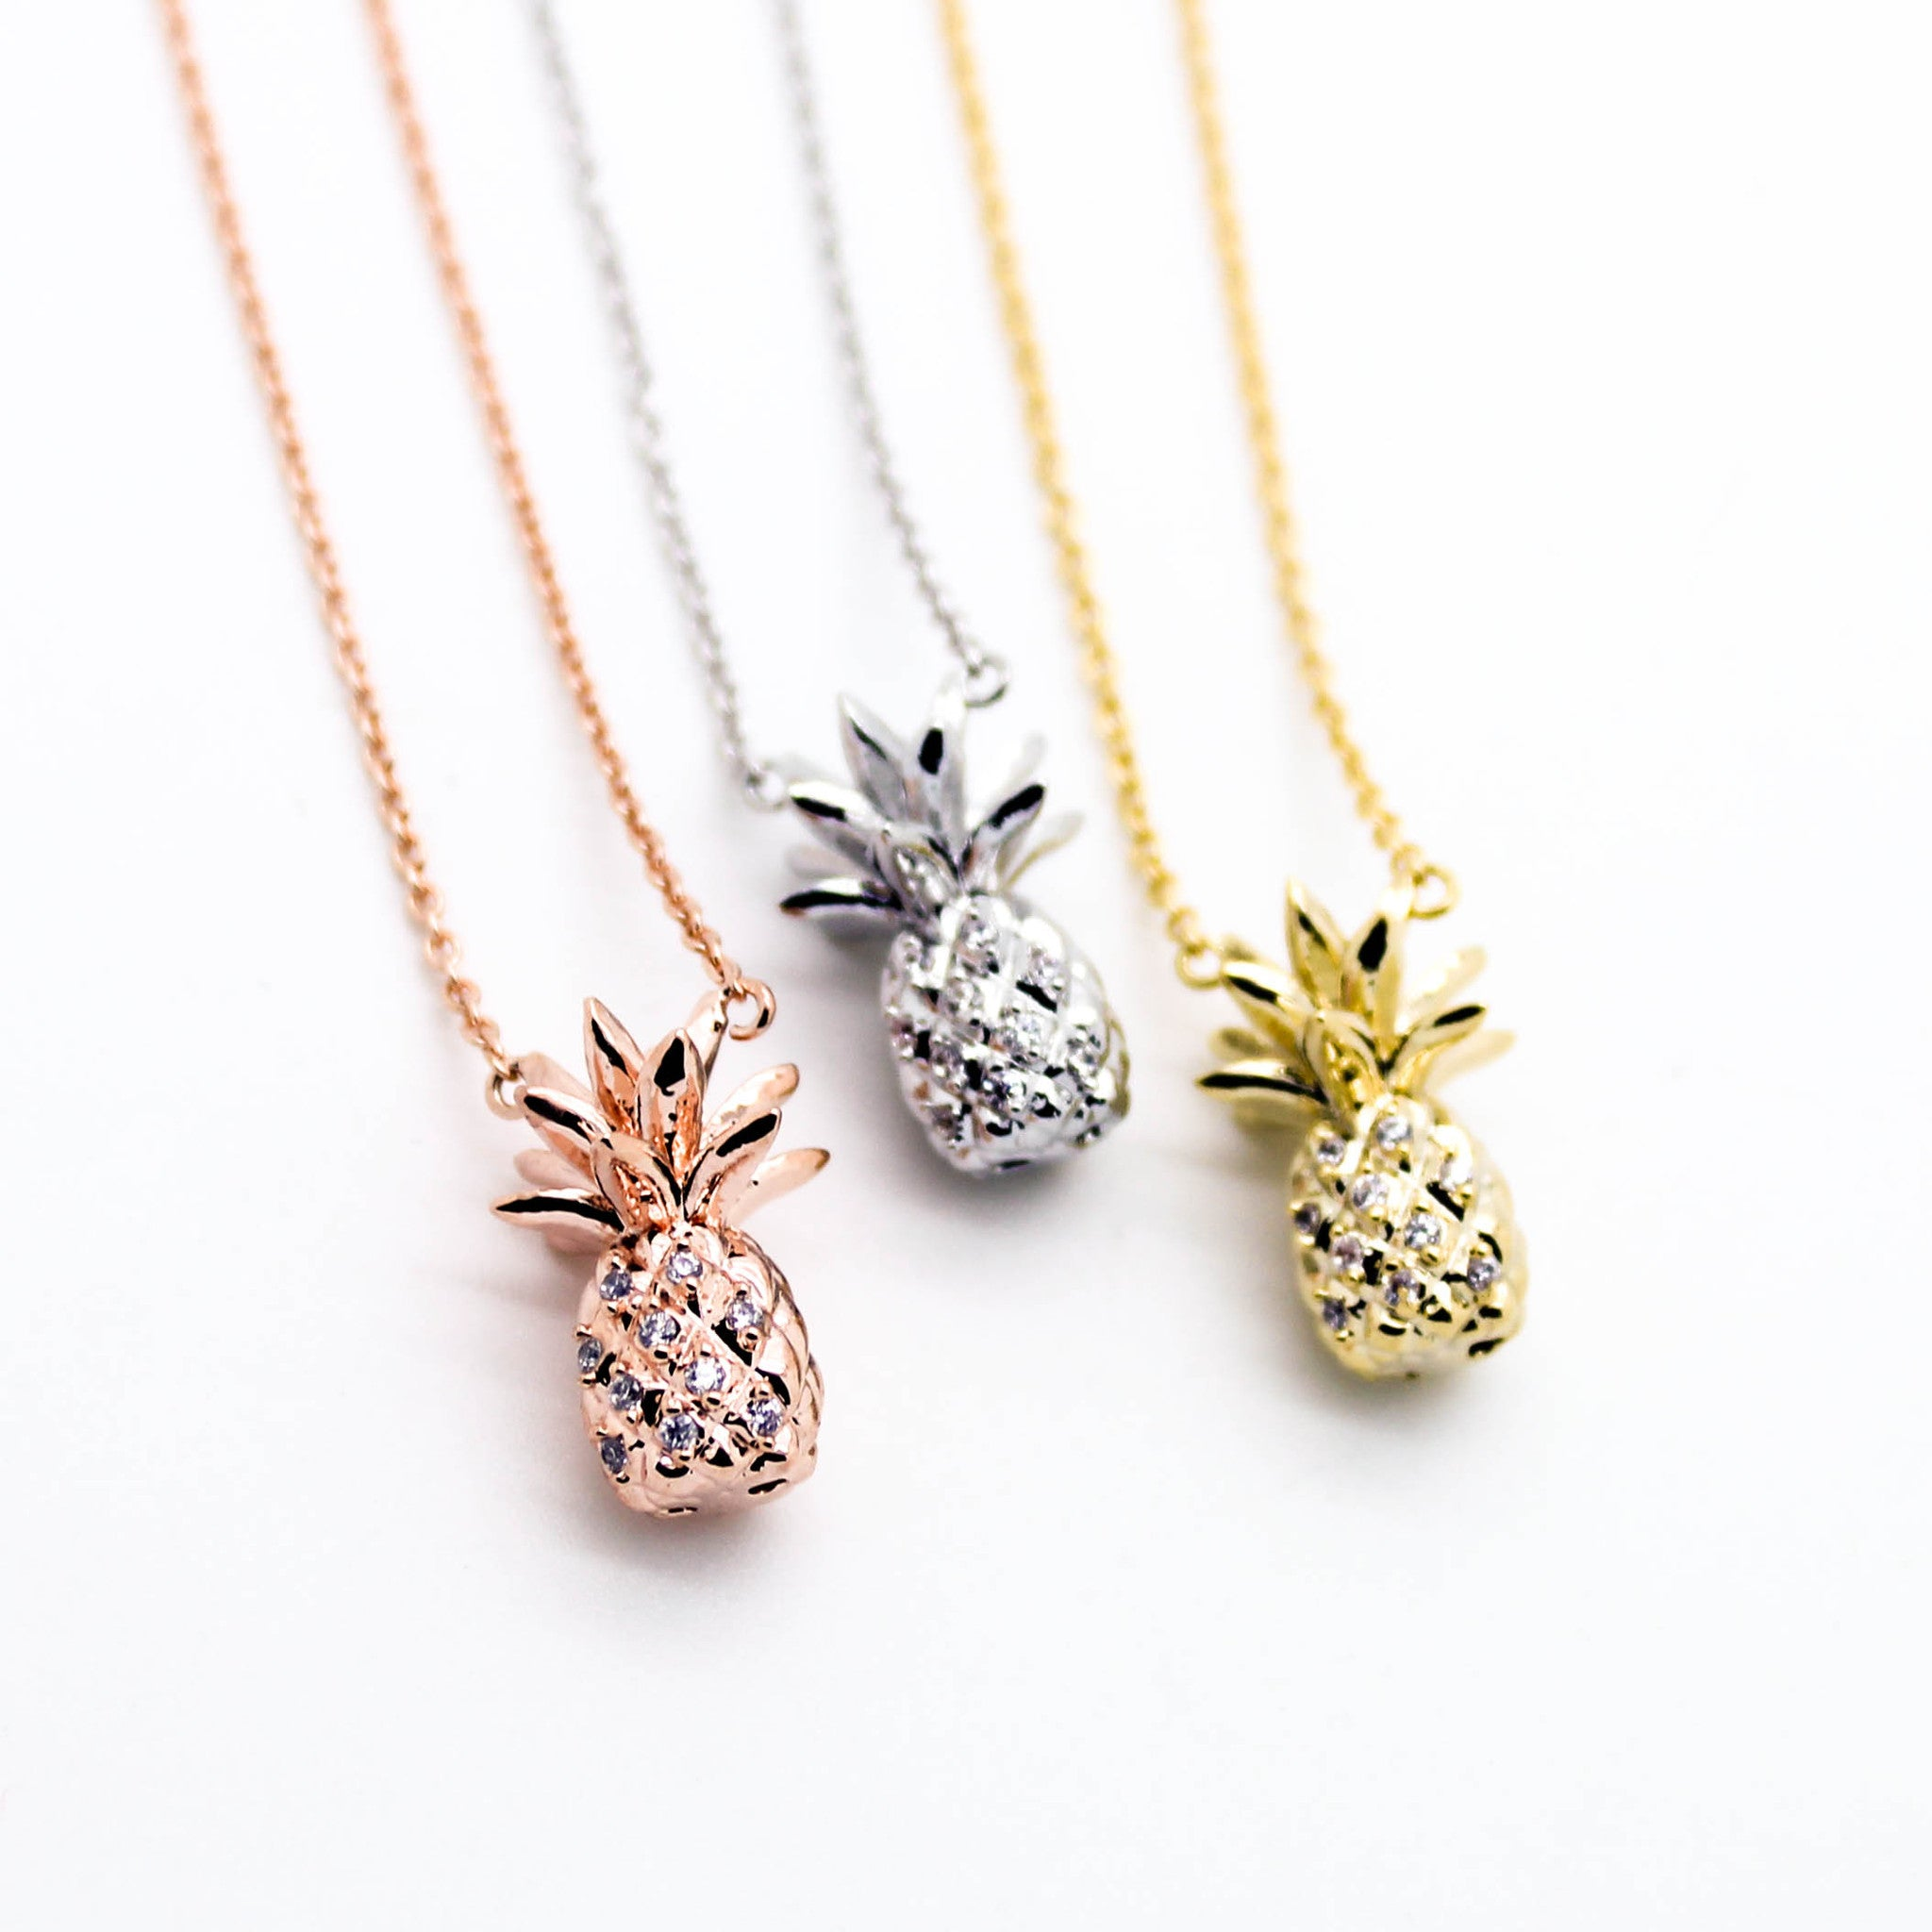 img of jugar products n mother necklace pearl pineapple spice